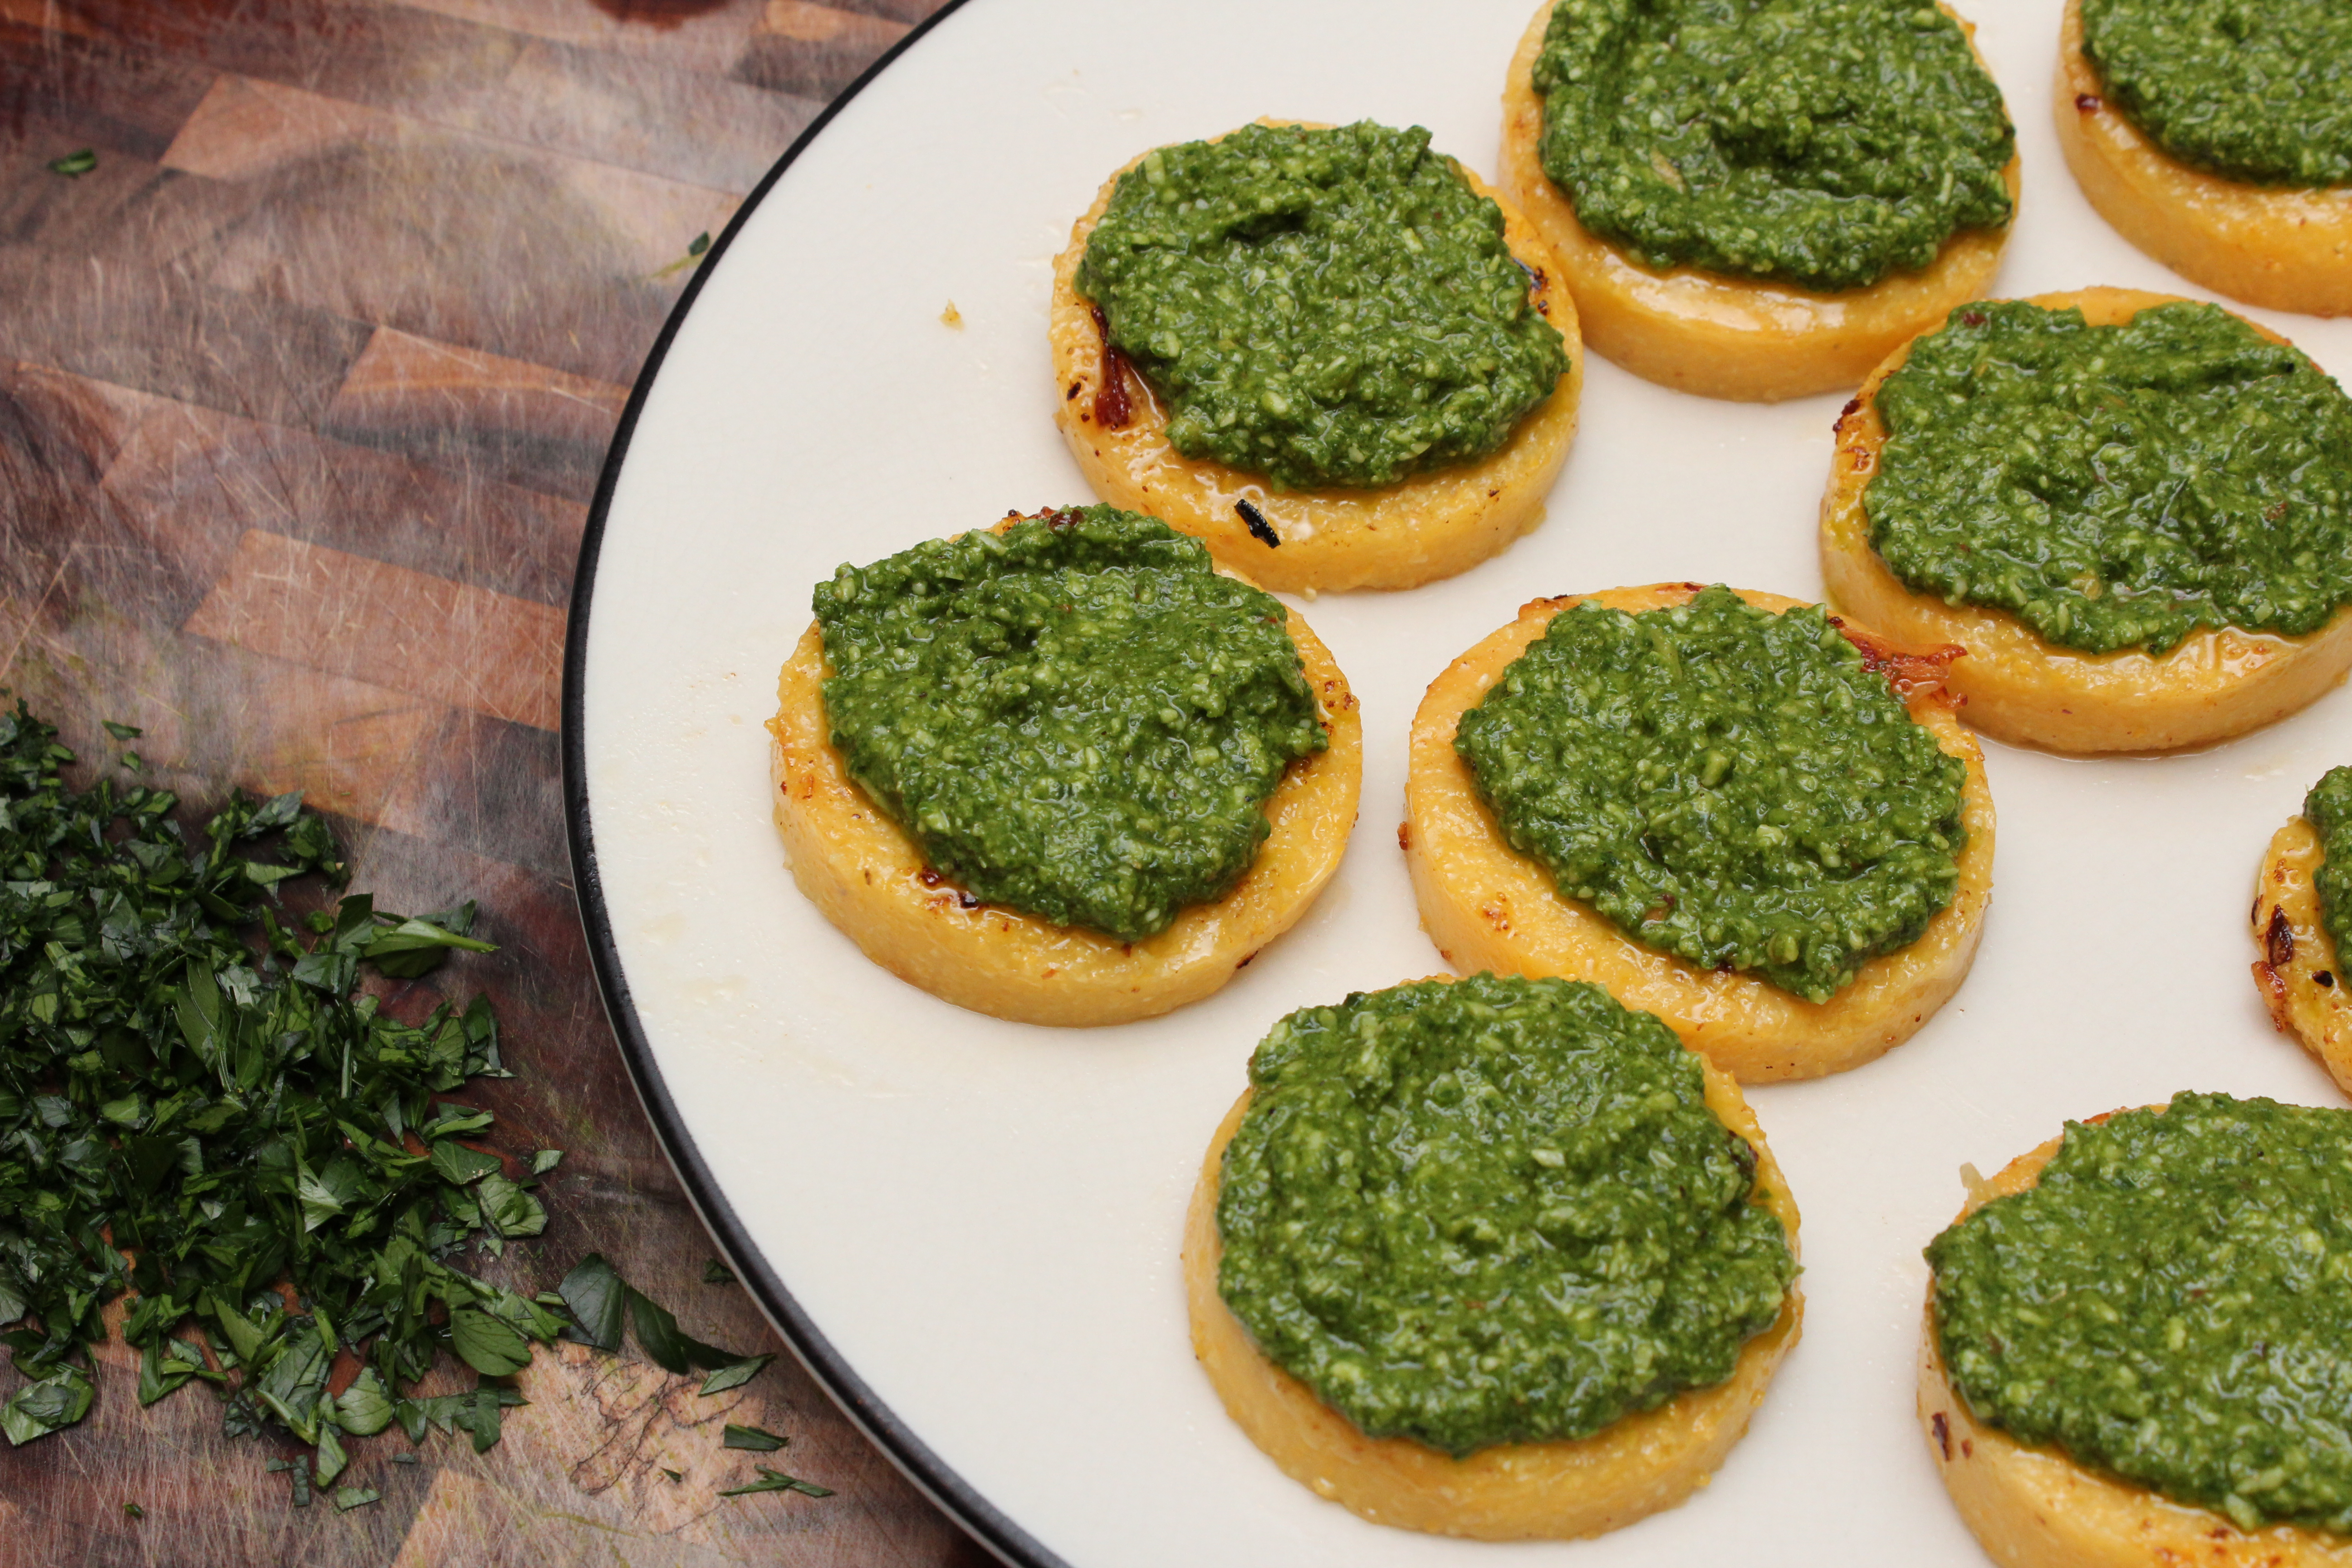 Polenta Pizzas With Kale, Chard, And Parsley Pesto Recipe ...